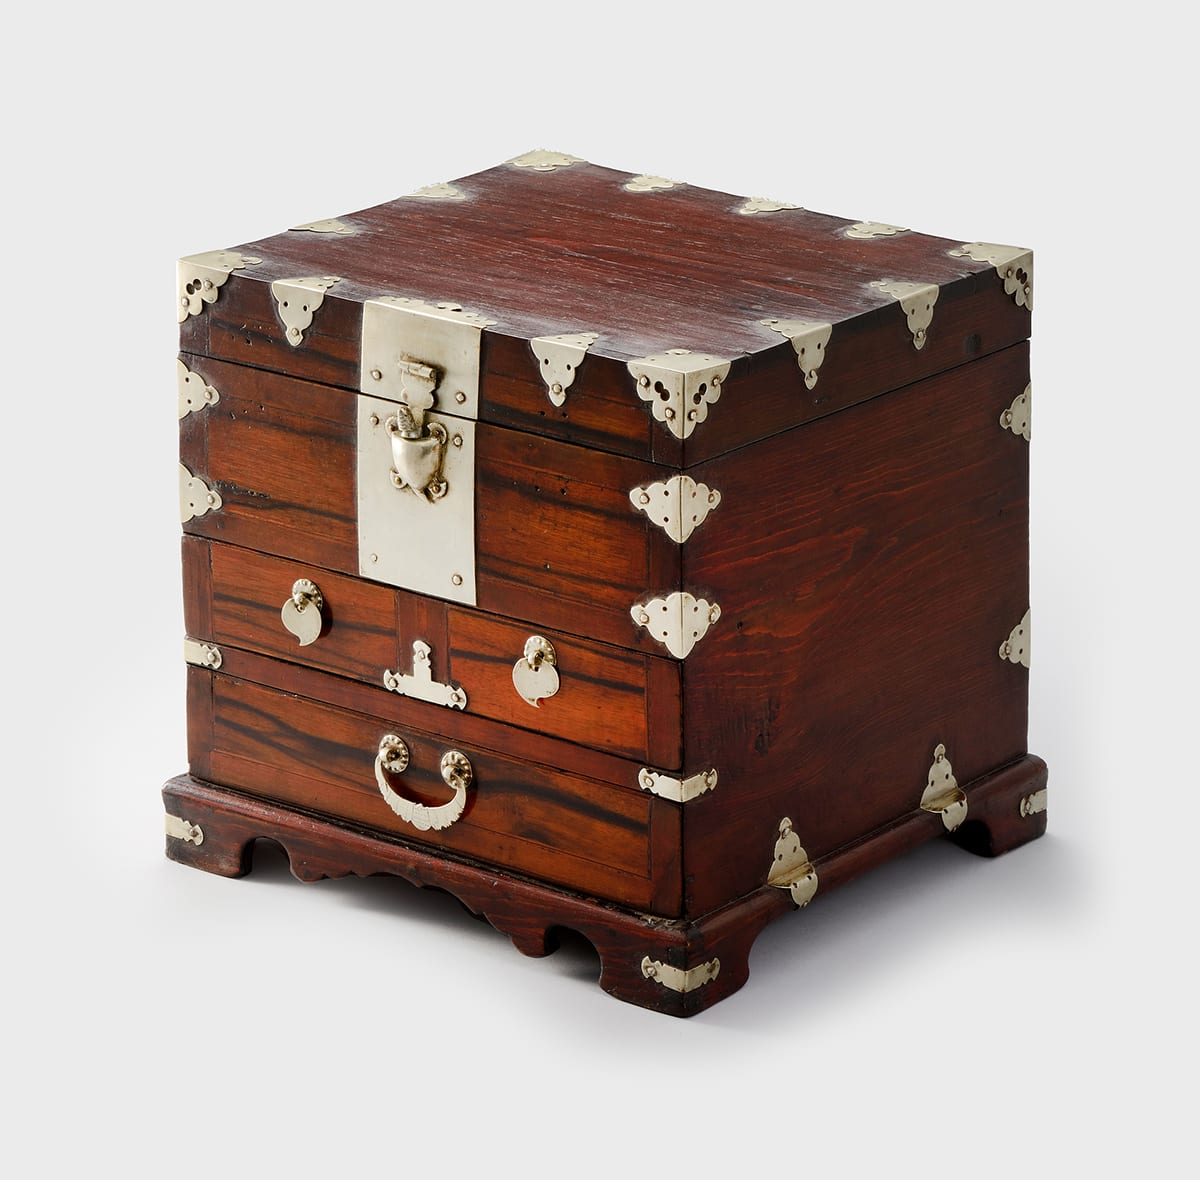 Comb Chest, 11 1/8 in x 10 1/2 in x 11 5/8 inches, persimmon wood with white brass (baekdong) fittings. A photo of a wooden, cube-shaped chest with numerous brass fittings decorating its edges. The chest is a warm brown with dark graining. On the front of the chest, near the top, is a latch in the shape of a turtle on a large smooth plate. The top of the latch is in the shape of the turtle's head and is attached to the lid by a horizontal hinge. Below the plate, there are two, small drawers adjacent to each other, each with a flat, round pull with a small tail at the bottom pointing toward the outside edge of the chest. Below these drawers is a long drawer with a pull in the shape of a stylized bat, its wings outstretched. The edges of the chest are embellished with triangular fittings that have scalloped edges and tiny, pierced holes. The fittings sit over the corners and edges of the chest at right angles. The chest sits on raised feet connected by a decorative apron.